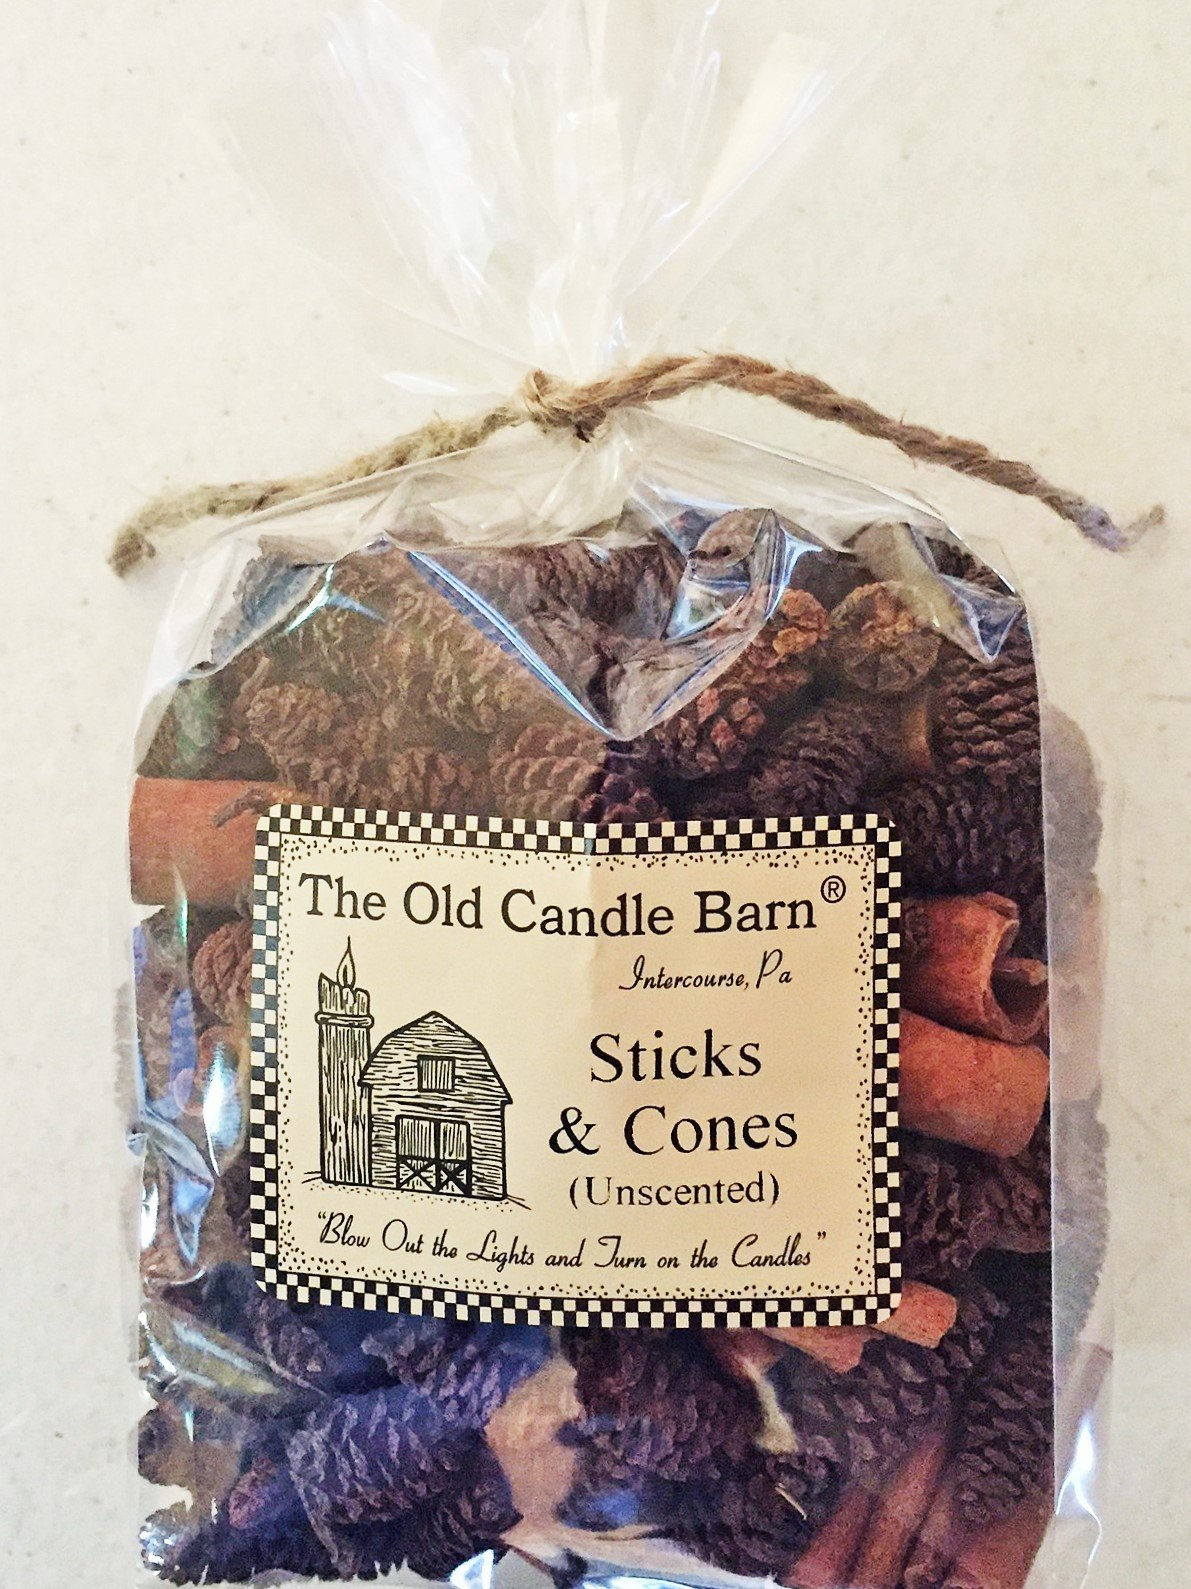 Old Candle Barn Sticks & Cones - 4 Cup Bag of Mini Pine Cones with Small Cinnamon Sticks - Unscented for Decoration Or Homemade Potpourri - Made in USA by Old Candle Barn (Image #1)